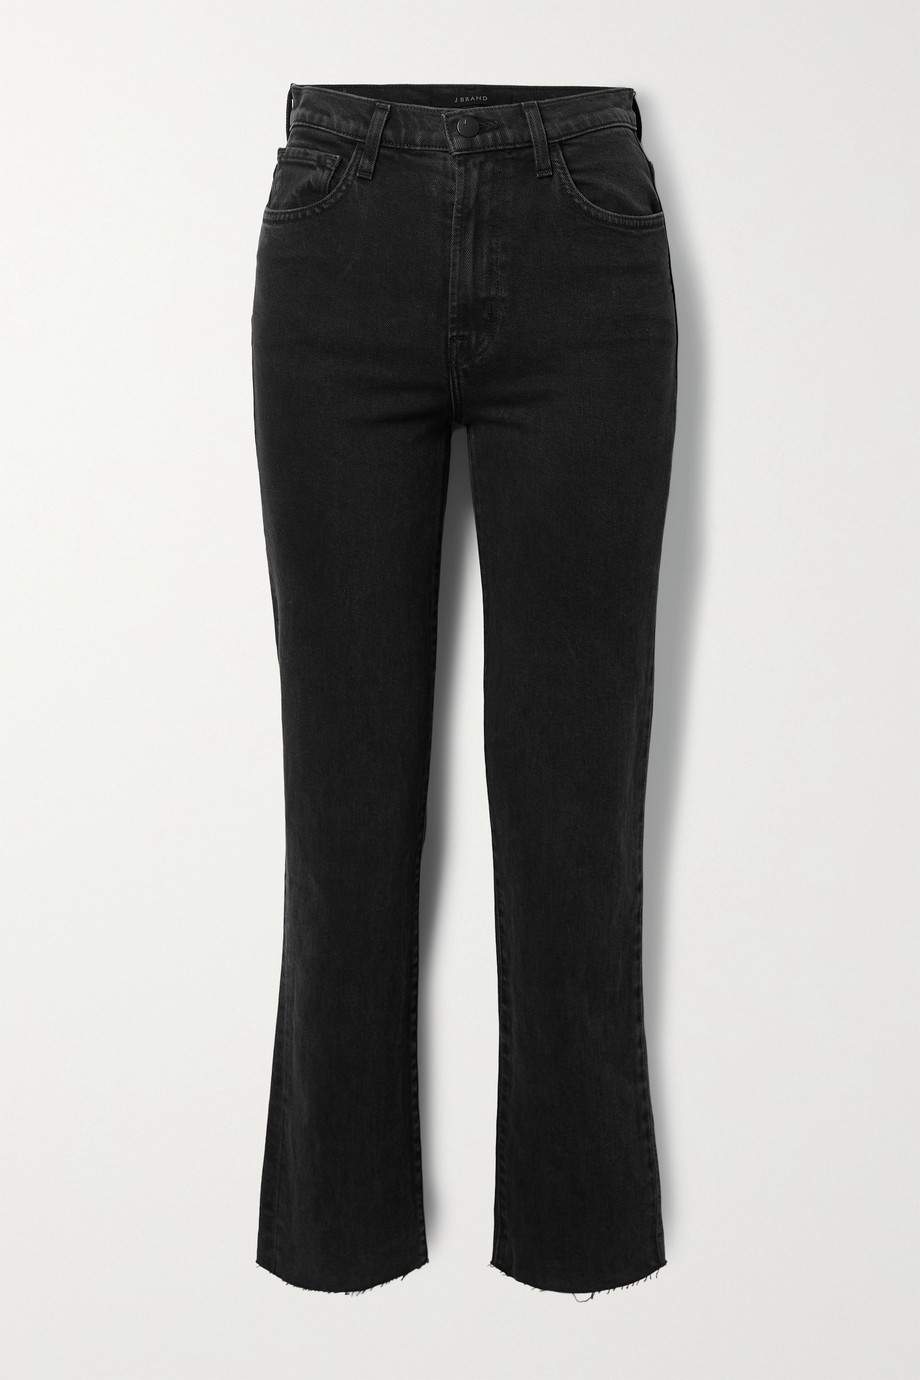 J BRAND Jules distressed high-rise straight-leg jeans